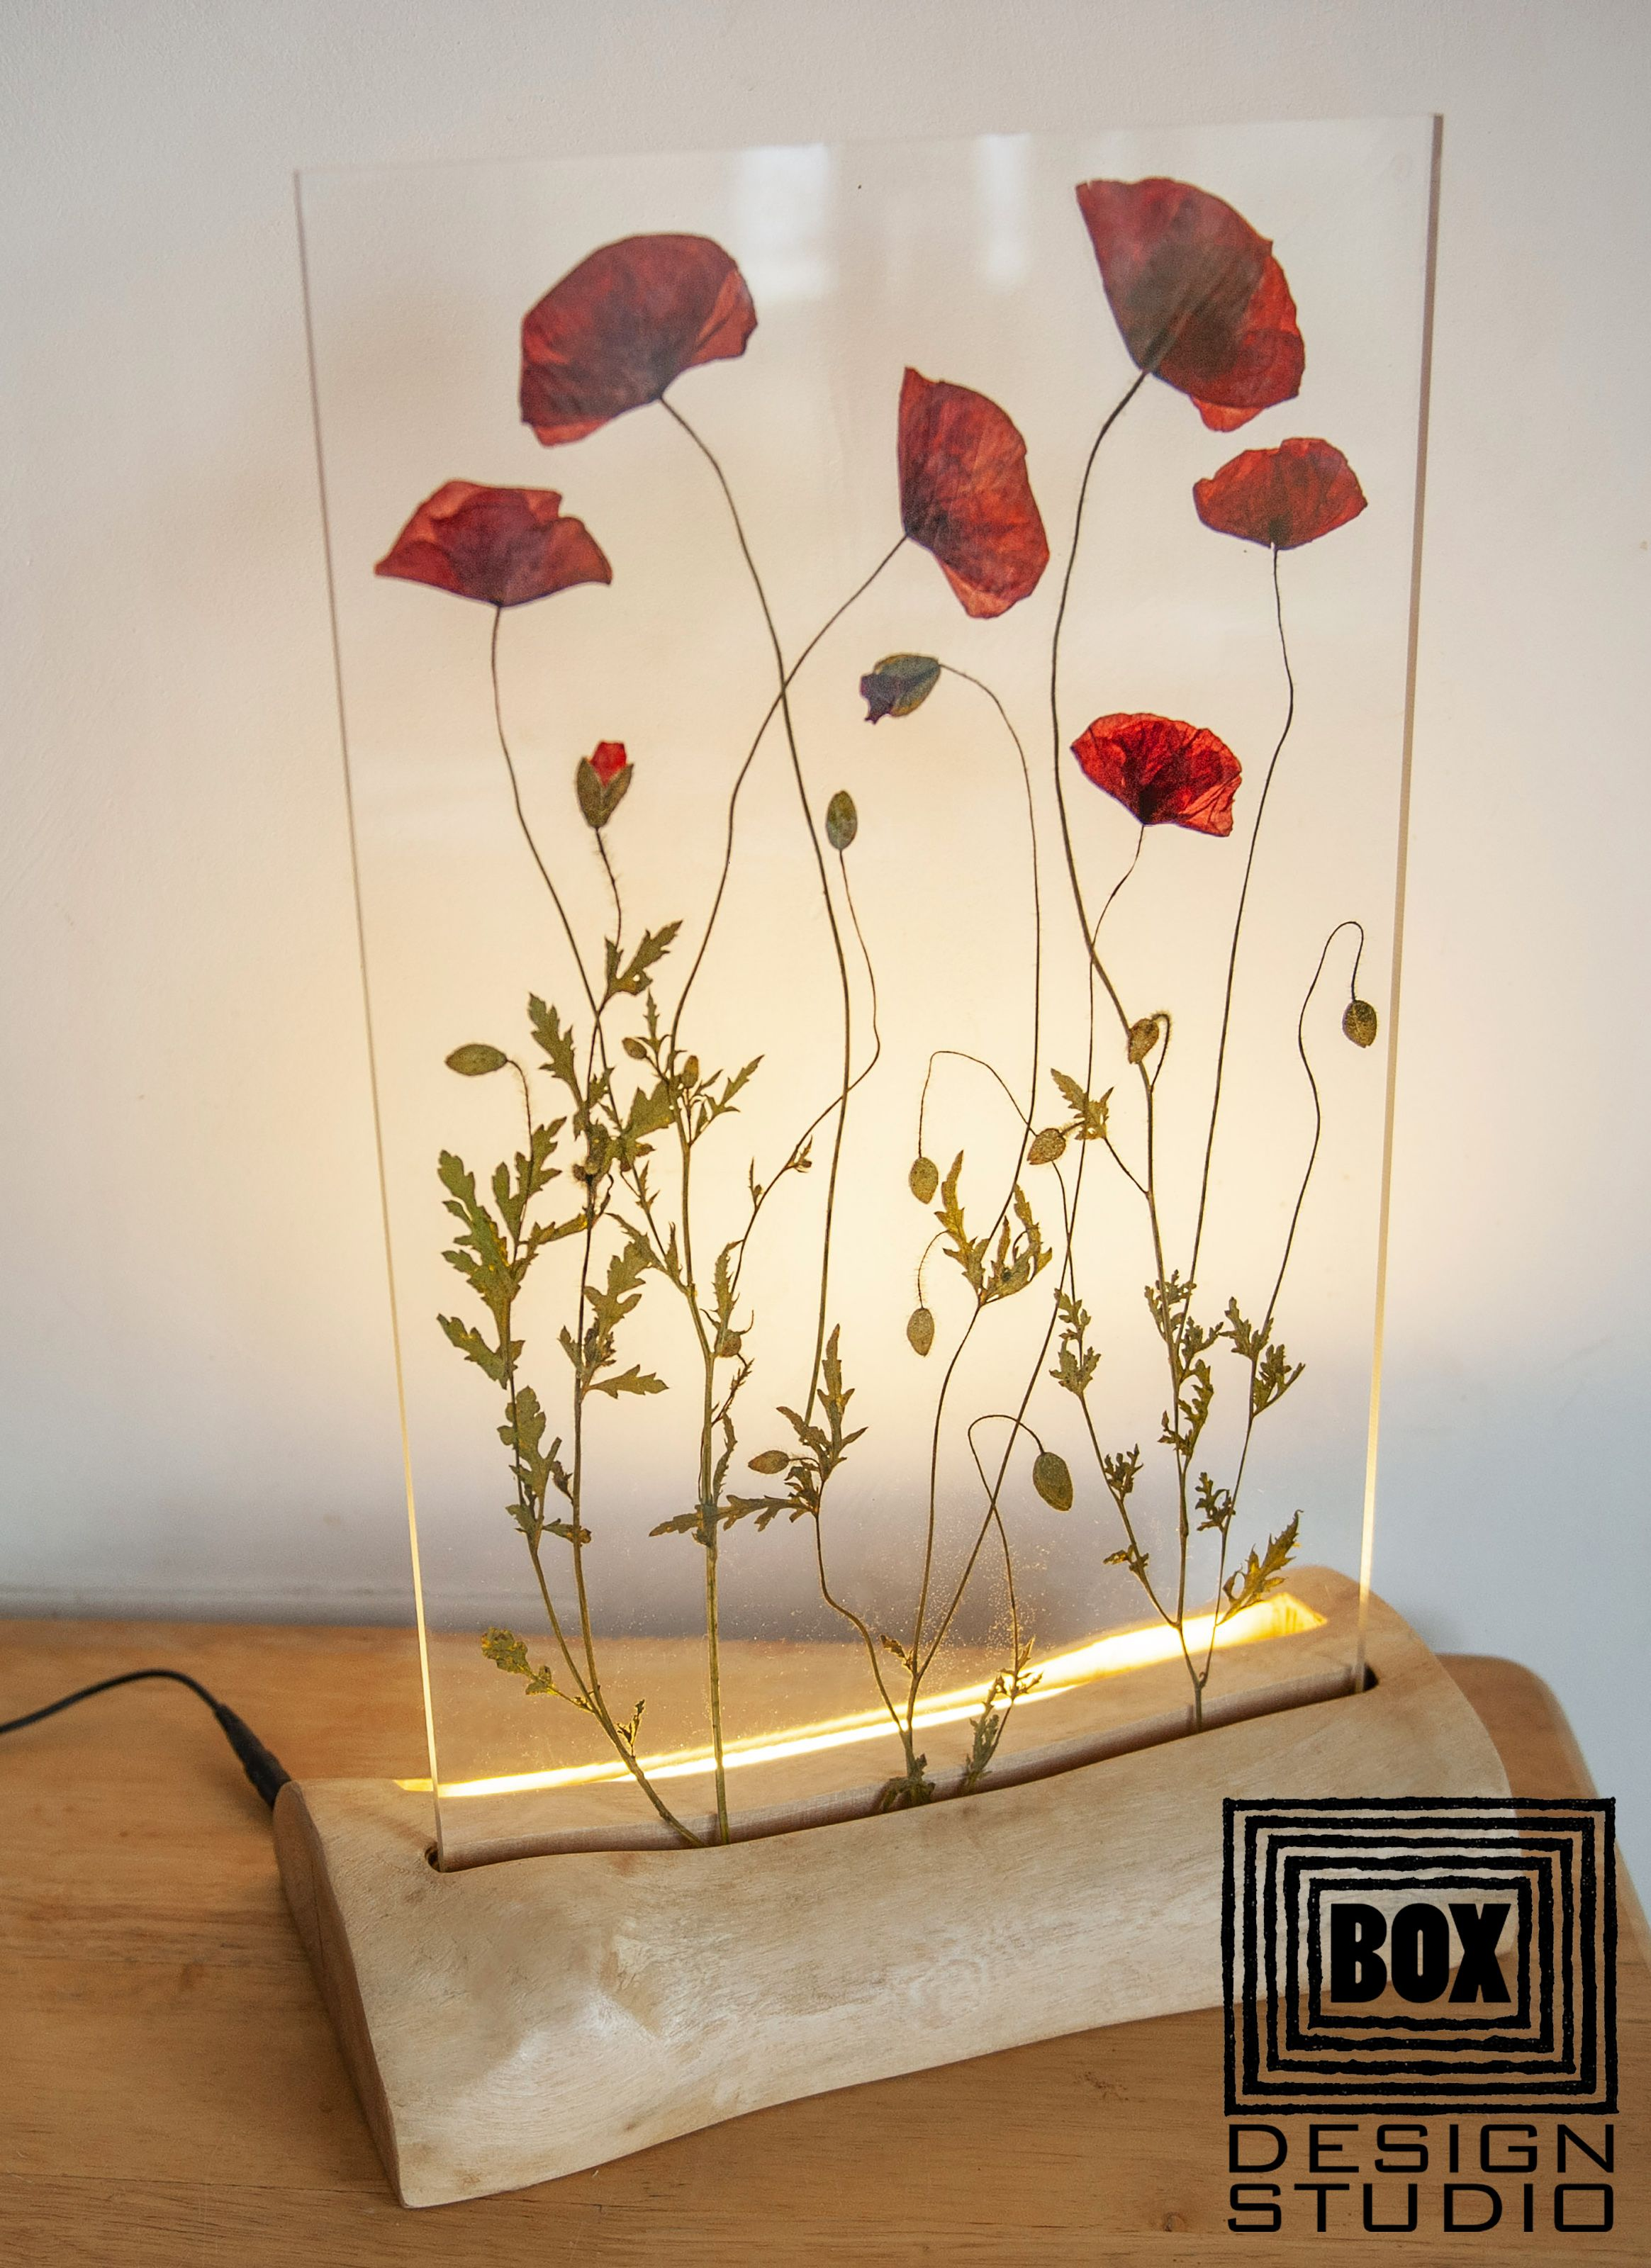 Birthday Gifts For Her Gift For Mom Epoxy Resin Flower Table Etsy In 2020 Diy Resin Art Resin Crafts Resin Wall Art